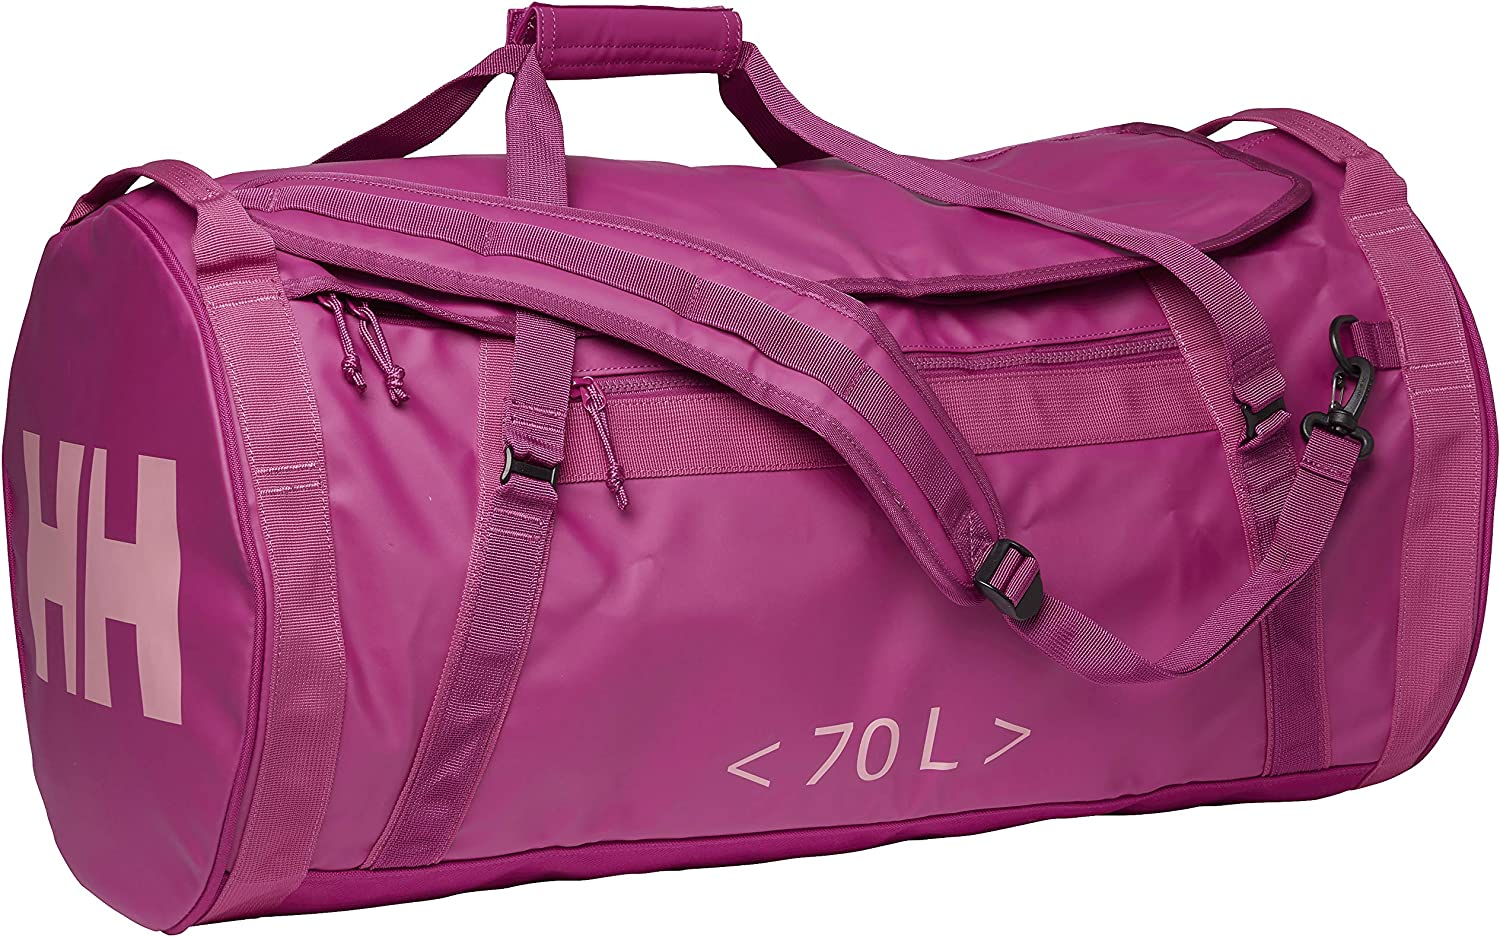 Helly-Hansen Hh Duffel 2 Water Resistant Packable Bag with Optional Backpack Straps